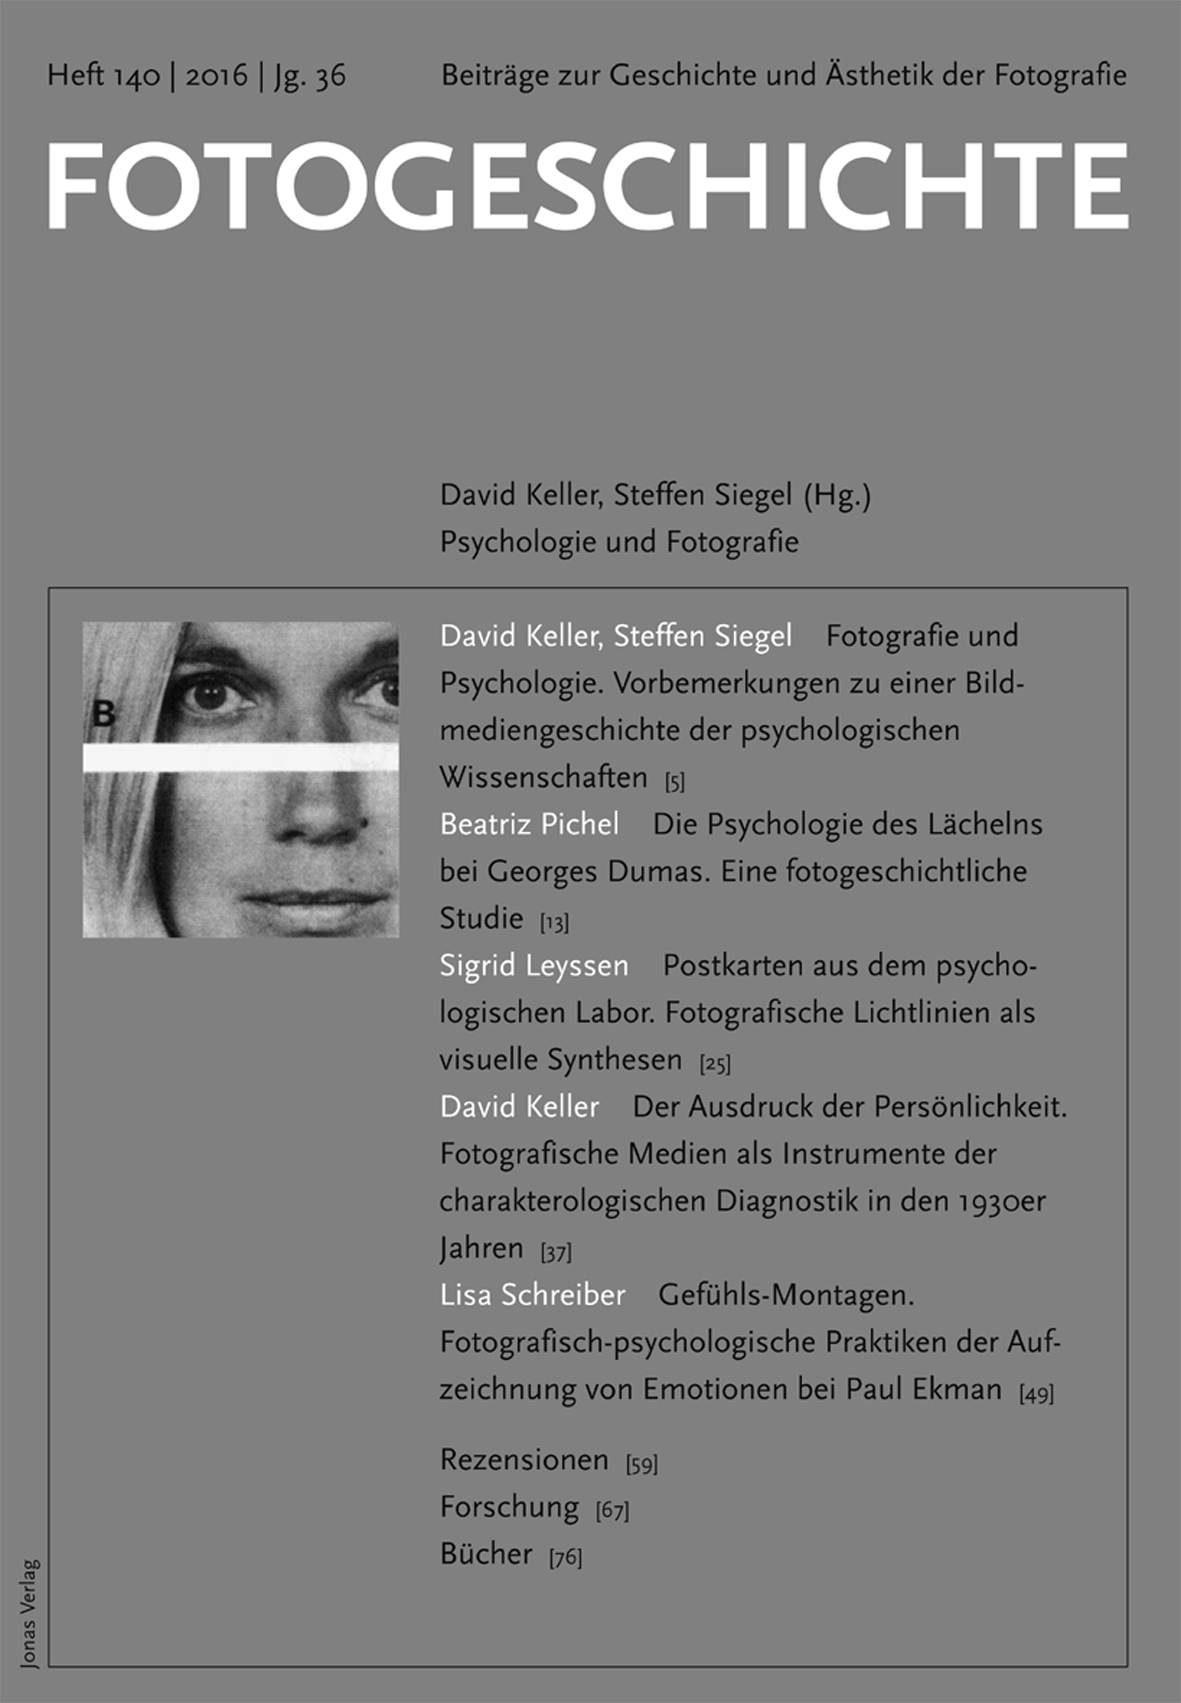 Fotogeschichte 140 © Cover Jonas